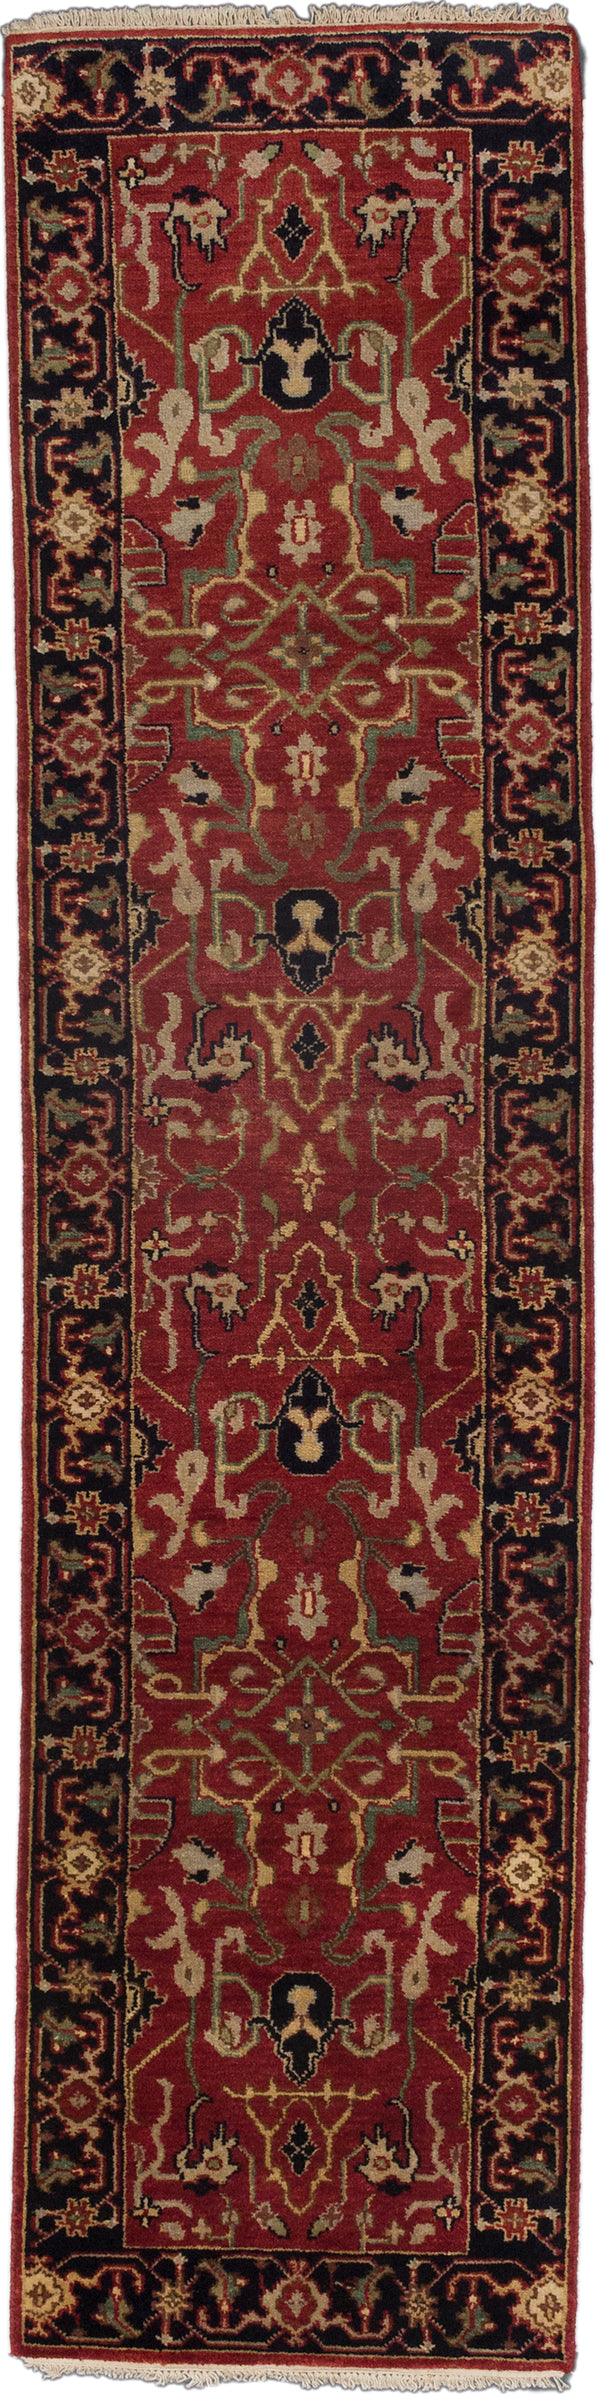 "Hand-knotted Indian Floral  Traditional Serapi-Heritage Runner rug  Black, Dark Burgundy 2'7 x 10'3"" """